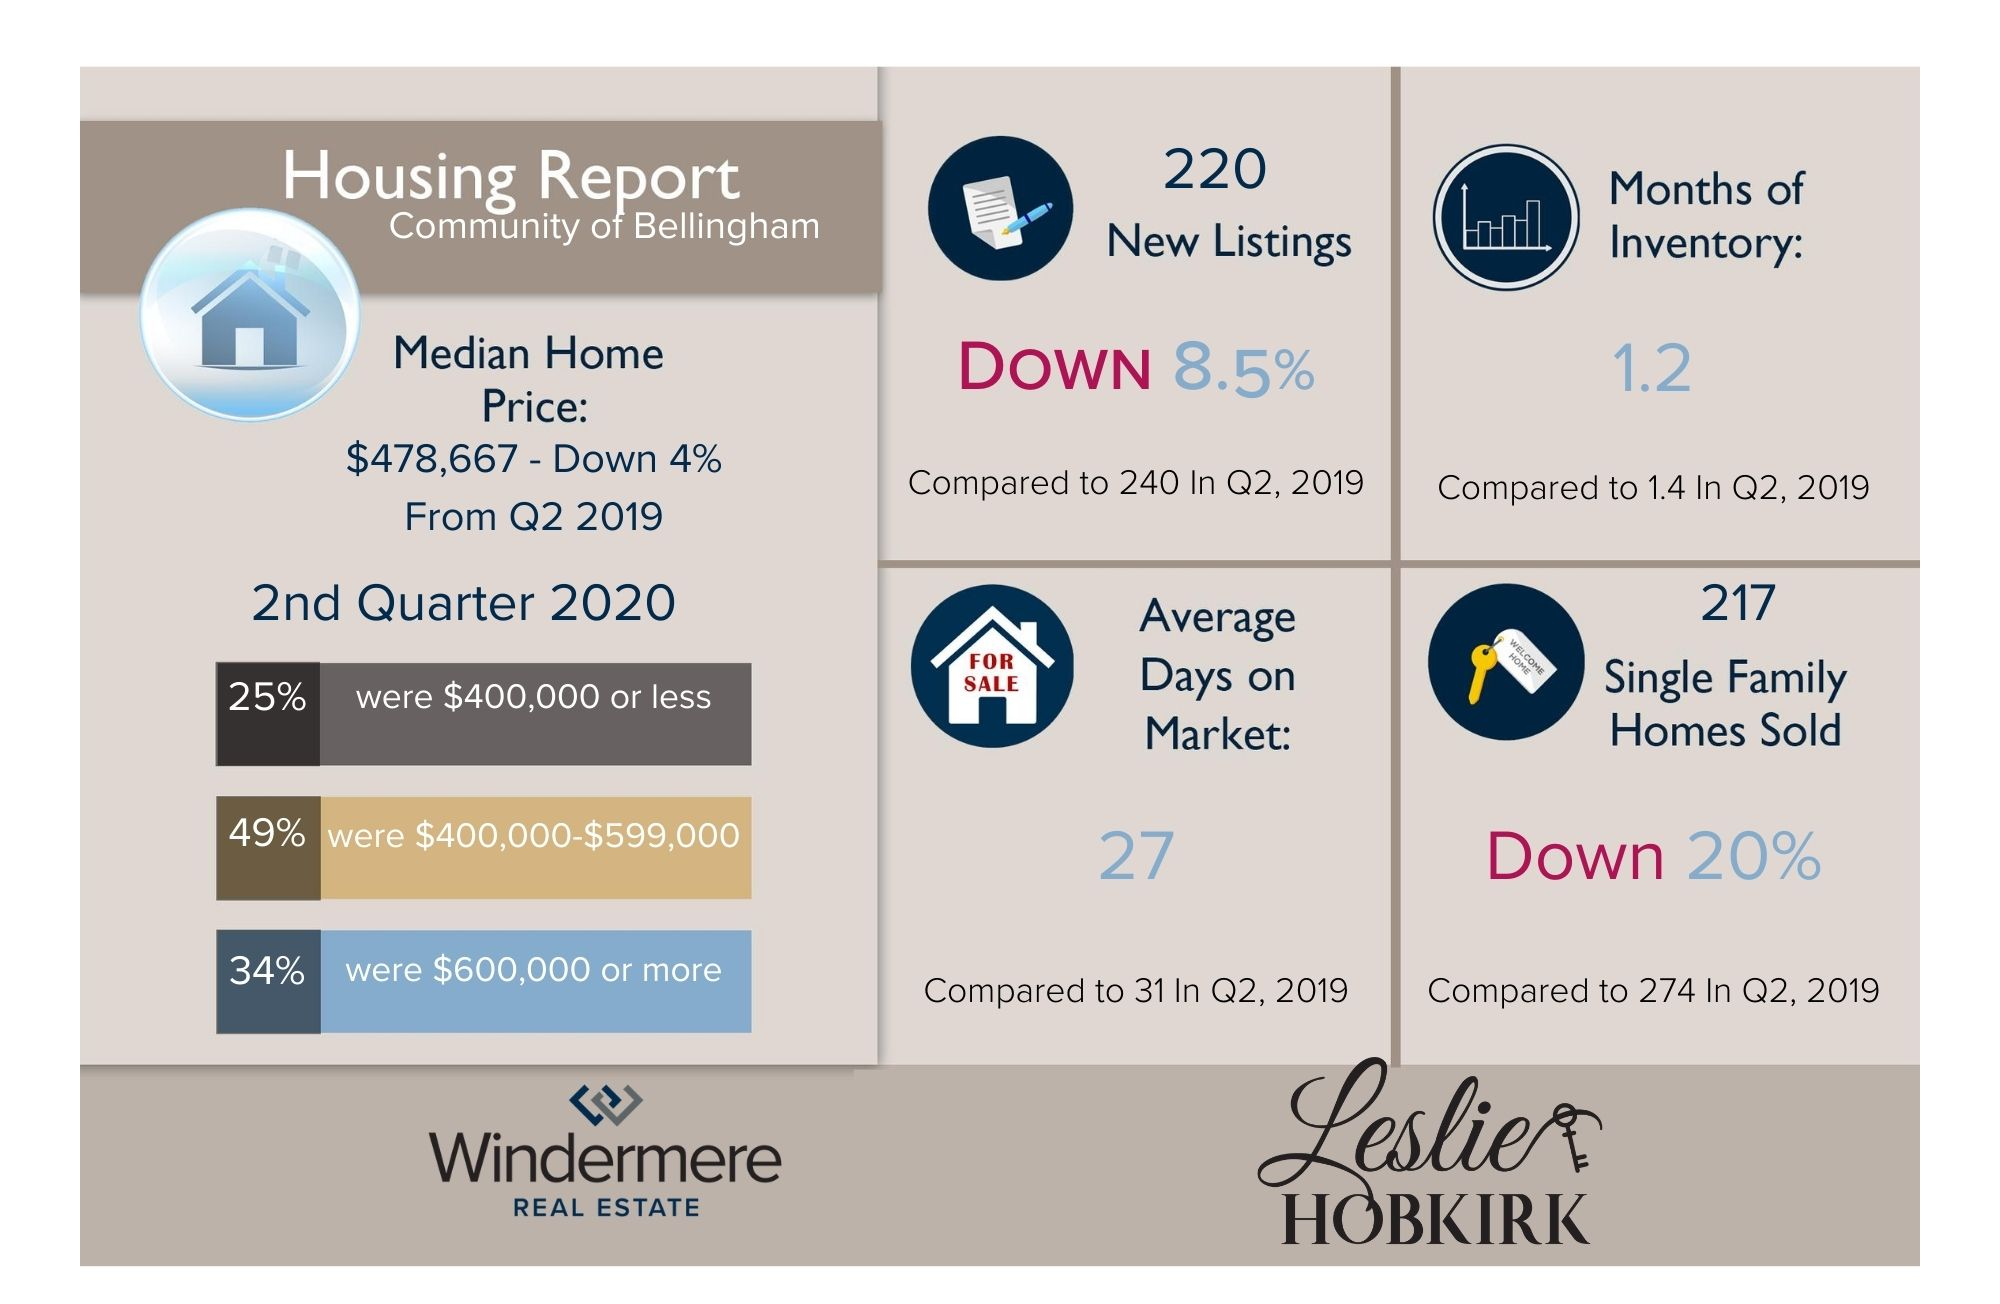 2nd qtr Housing Report Infographic 2020